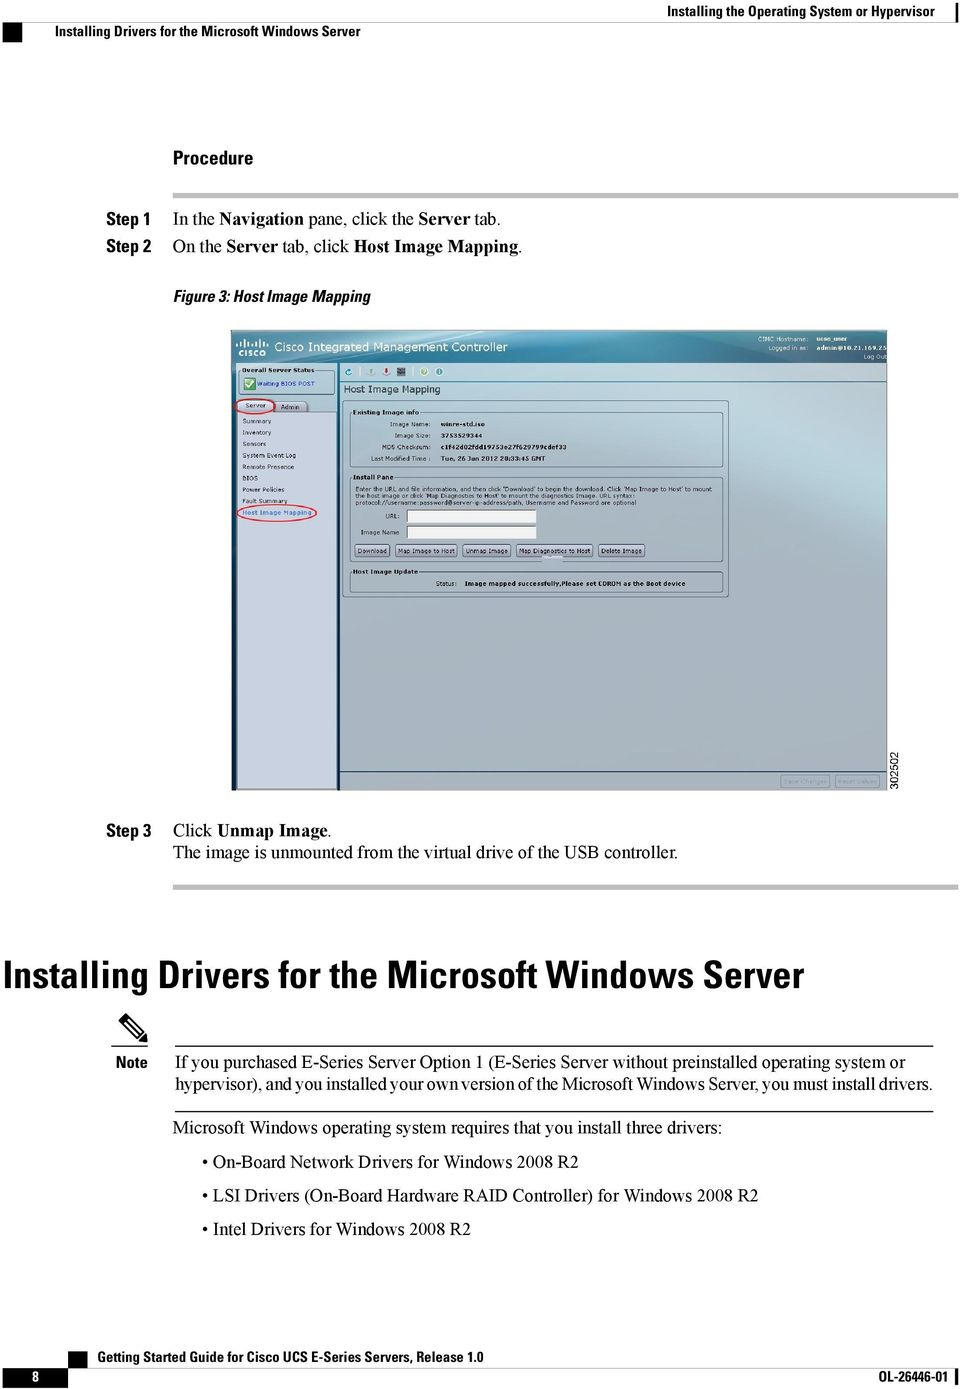 Installing Drivers for the Microsoft Windows Server If you purchased E-Series Server Option 1 (E-Series Server without preinstalled operating system or hypervisor), and you installed your own version